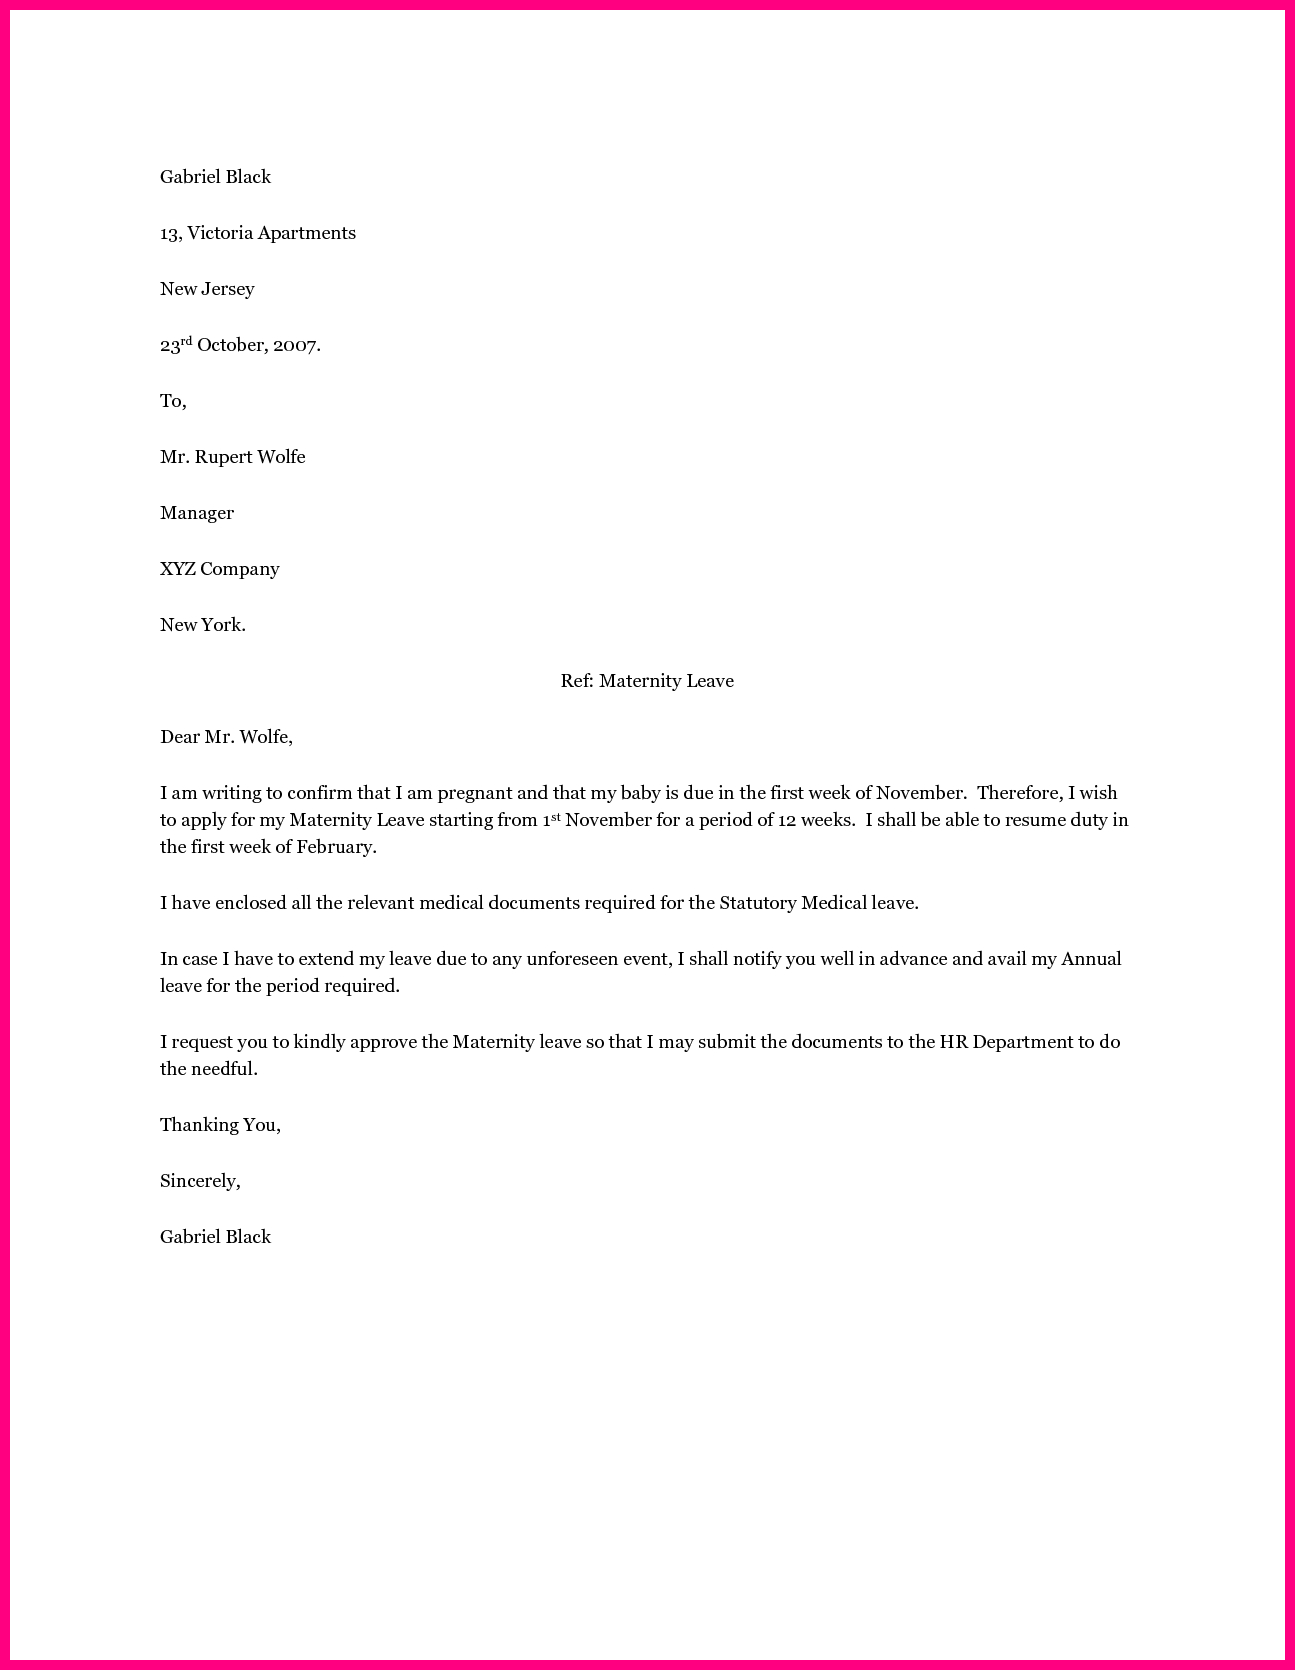 Pregnancy Confirmation Letter Template - Employee Maternity Leave Letter Sample Application format for School